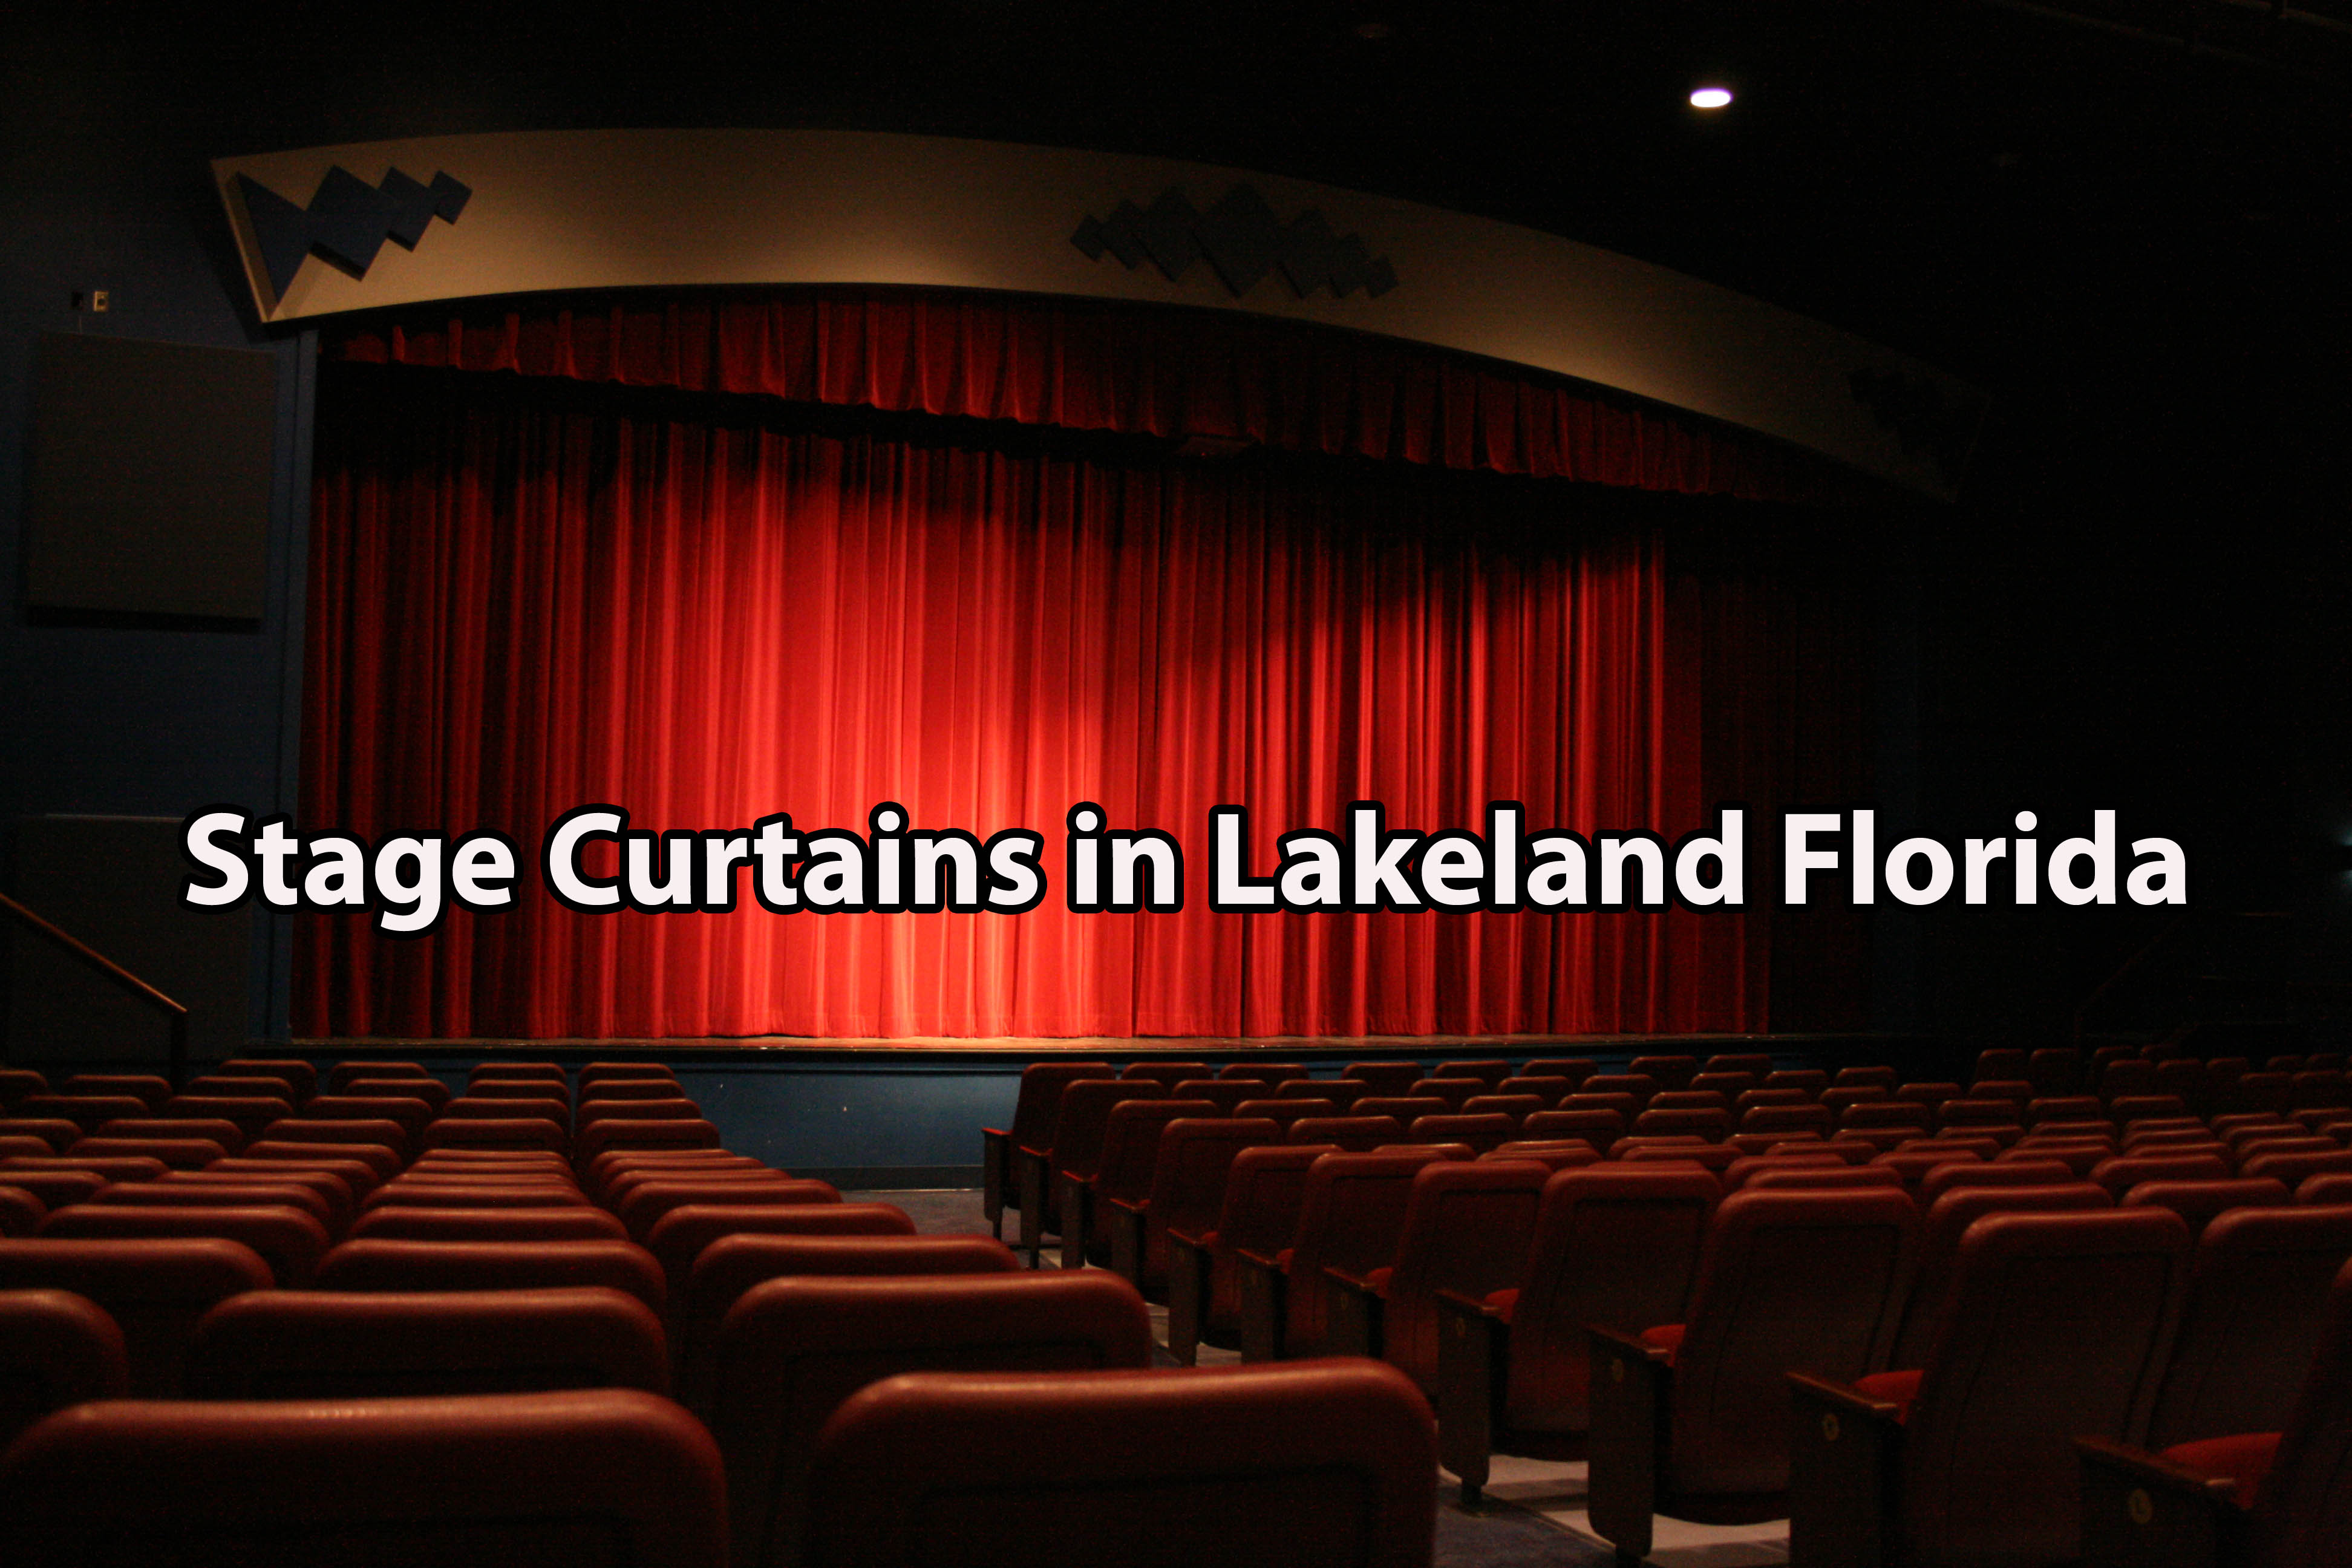 Stage Curtains in Lakeland Florida